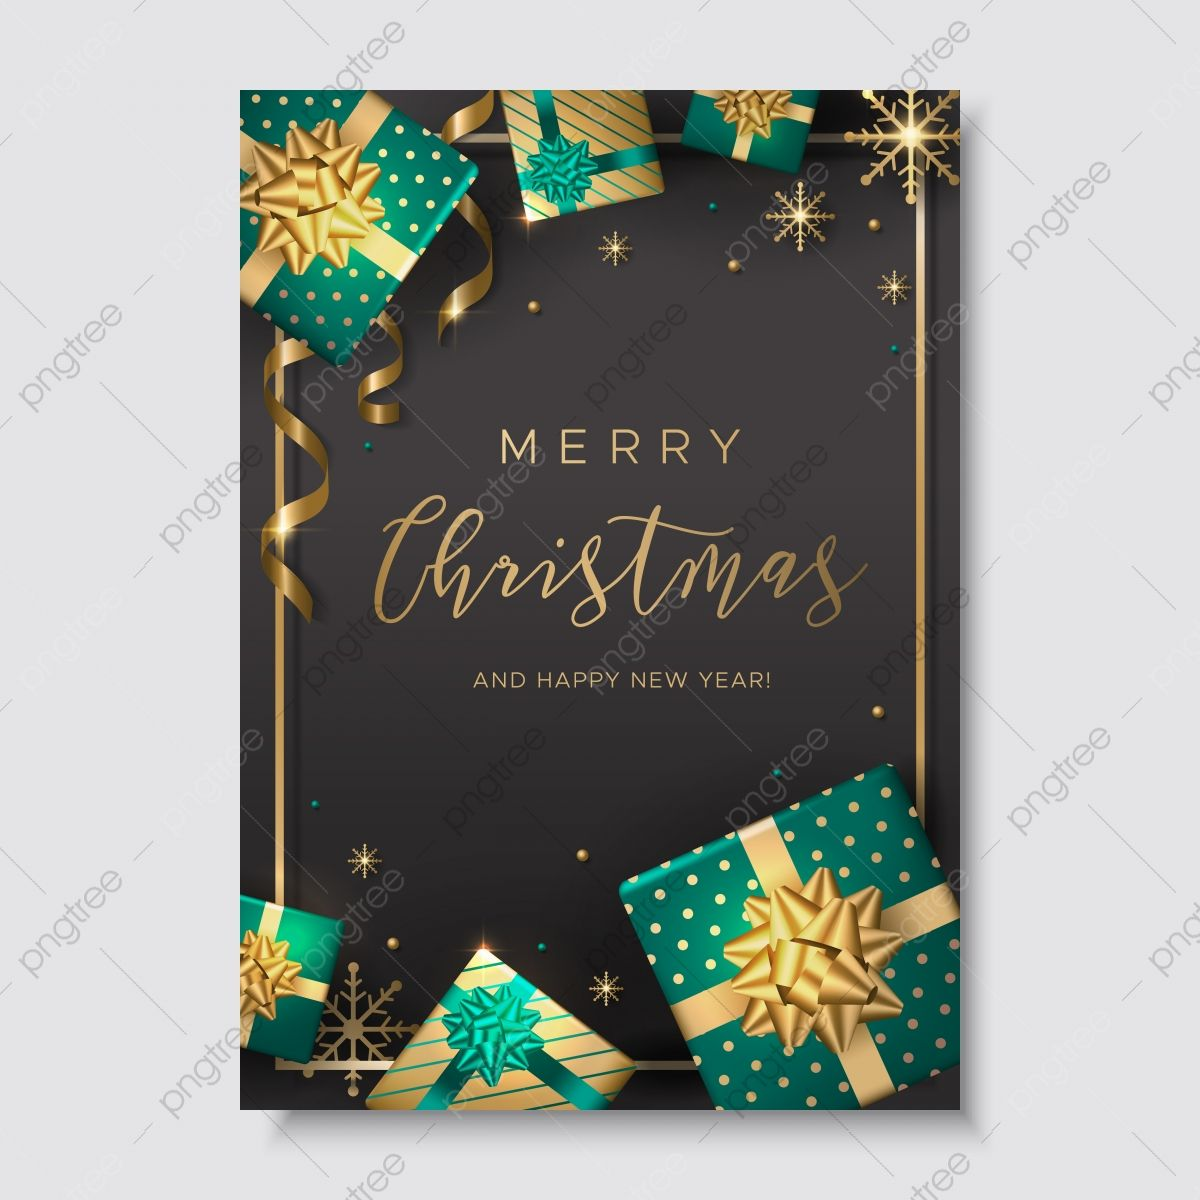 Merry Christmas Card With Gold S And Presents In Holiday Packaging Template Download On Pngtree Christmas Card Images Merry Christmas Card Christmas Cards Free